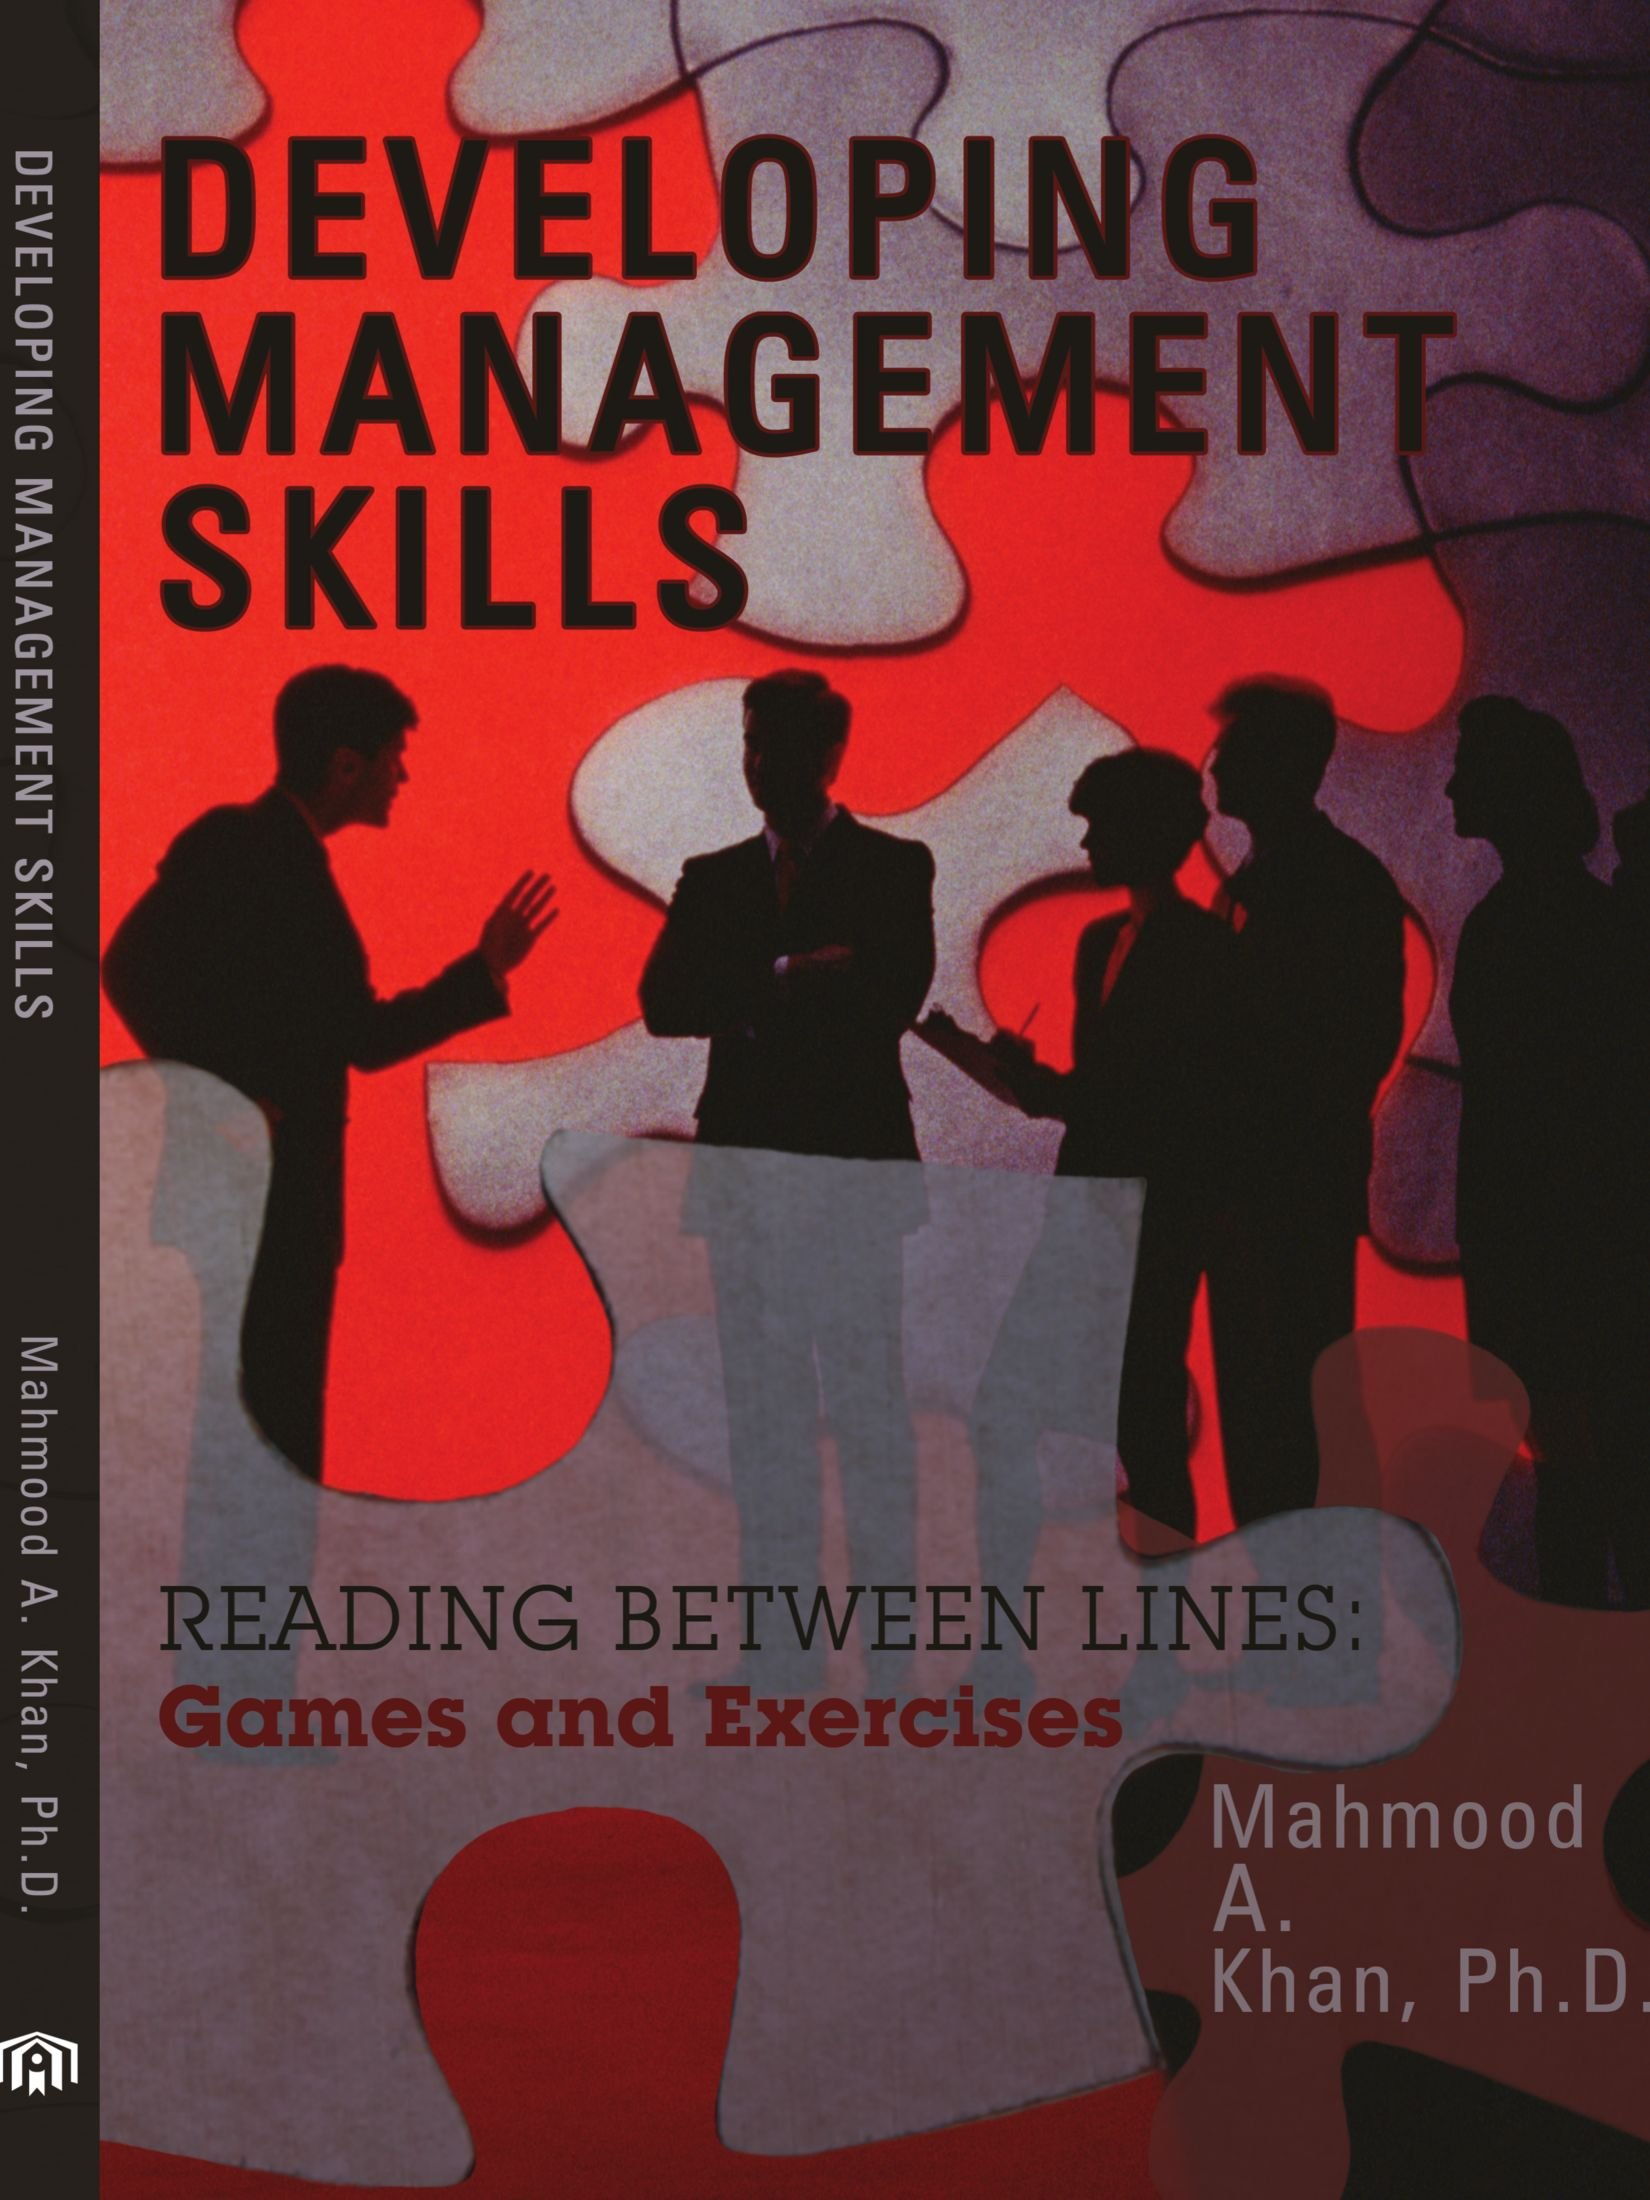 Download DEVELOPING MANAGEMENT SKILLS: READING BETWEEN LINES: Games and Exercises pdf